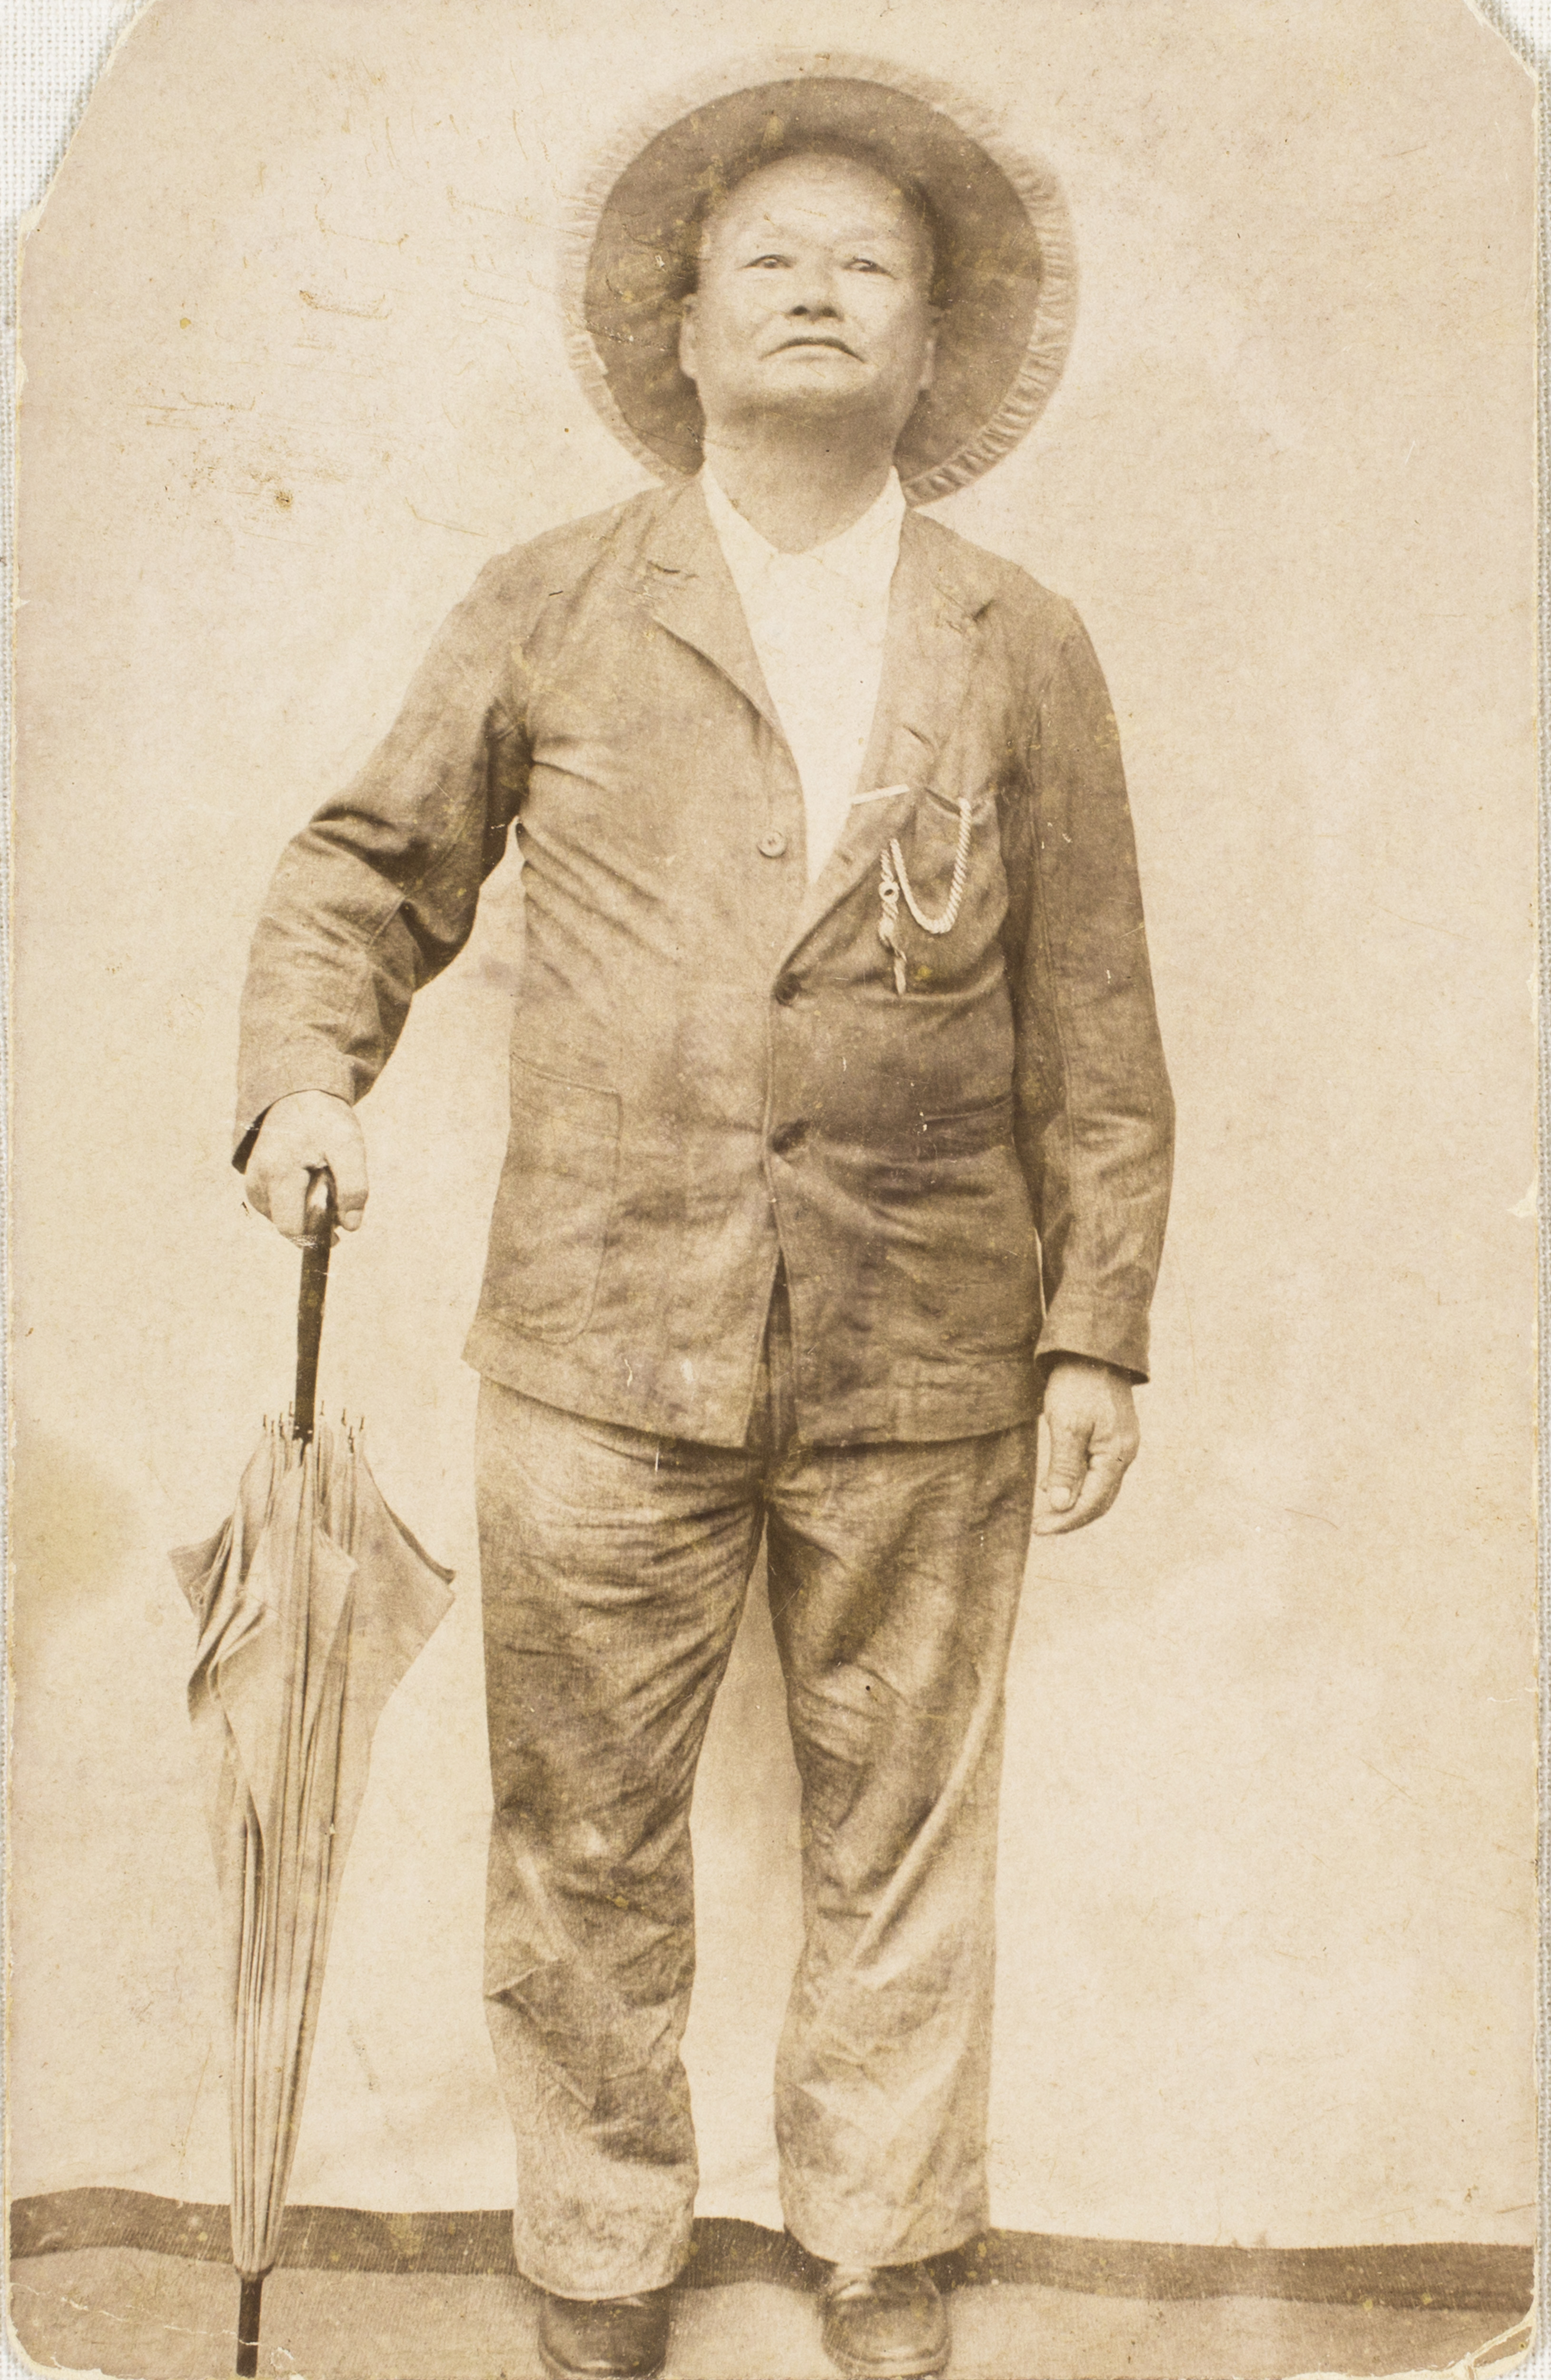 Man standing upright. He holds onto the handle of a folded umbrella by his side